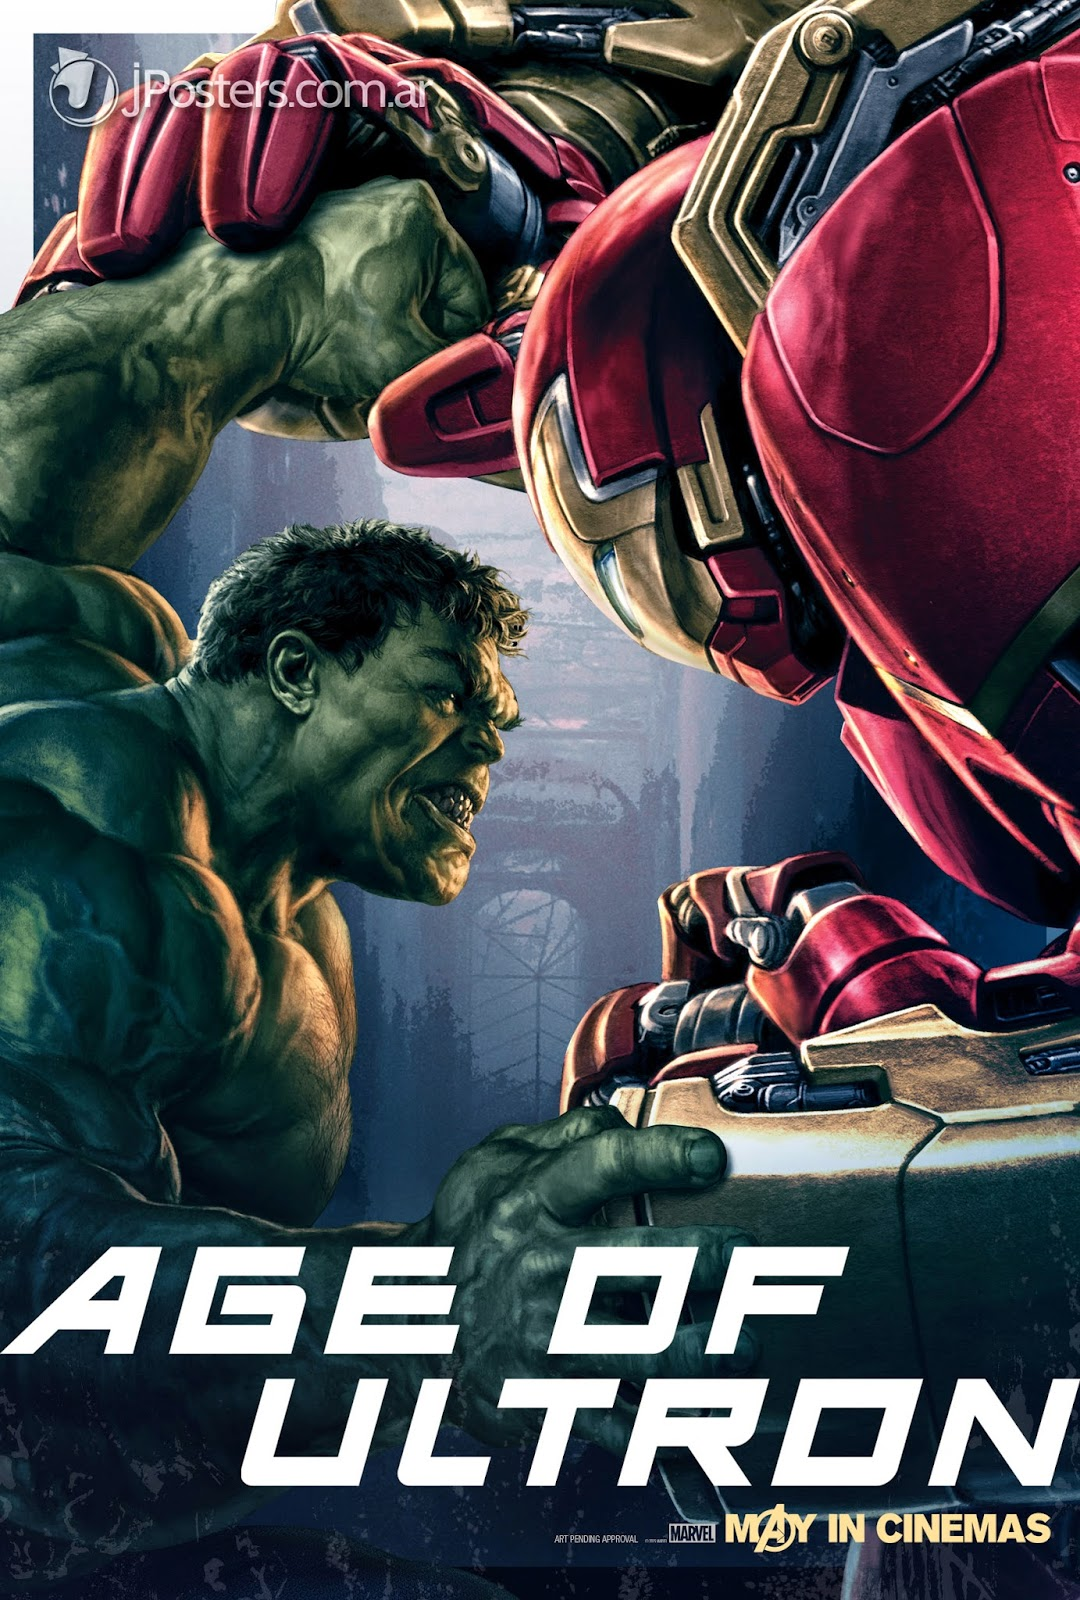 image avengers age of ultron unpublished character poster k